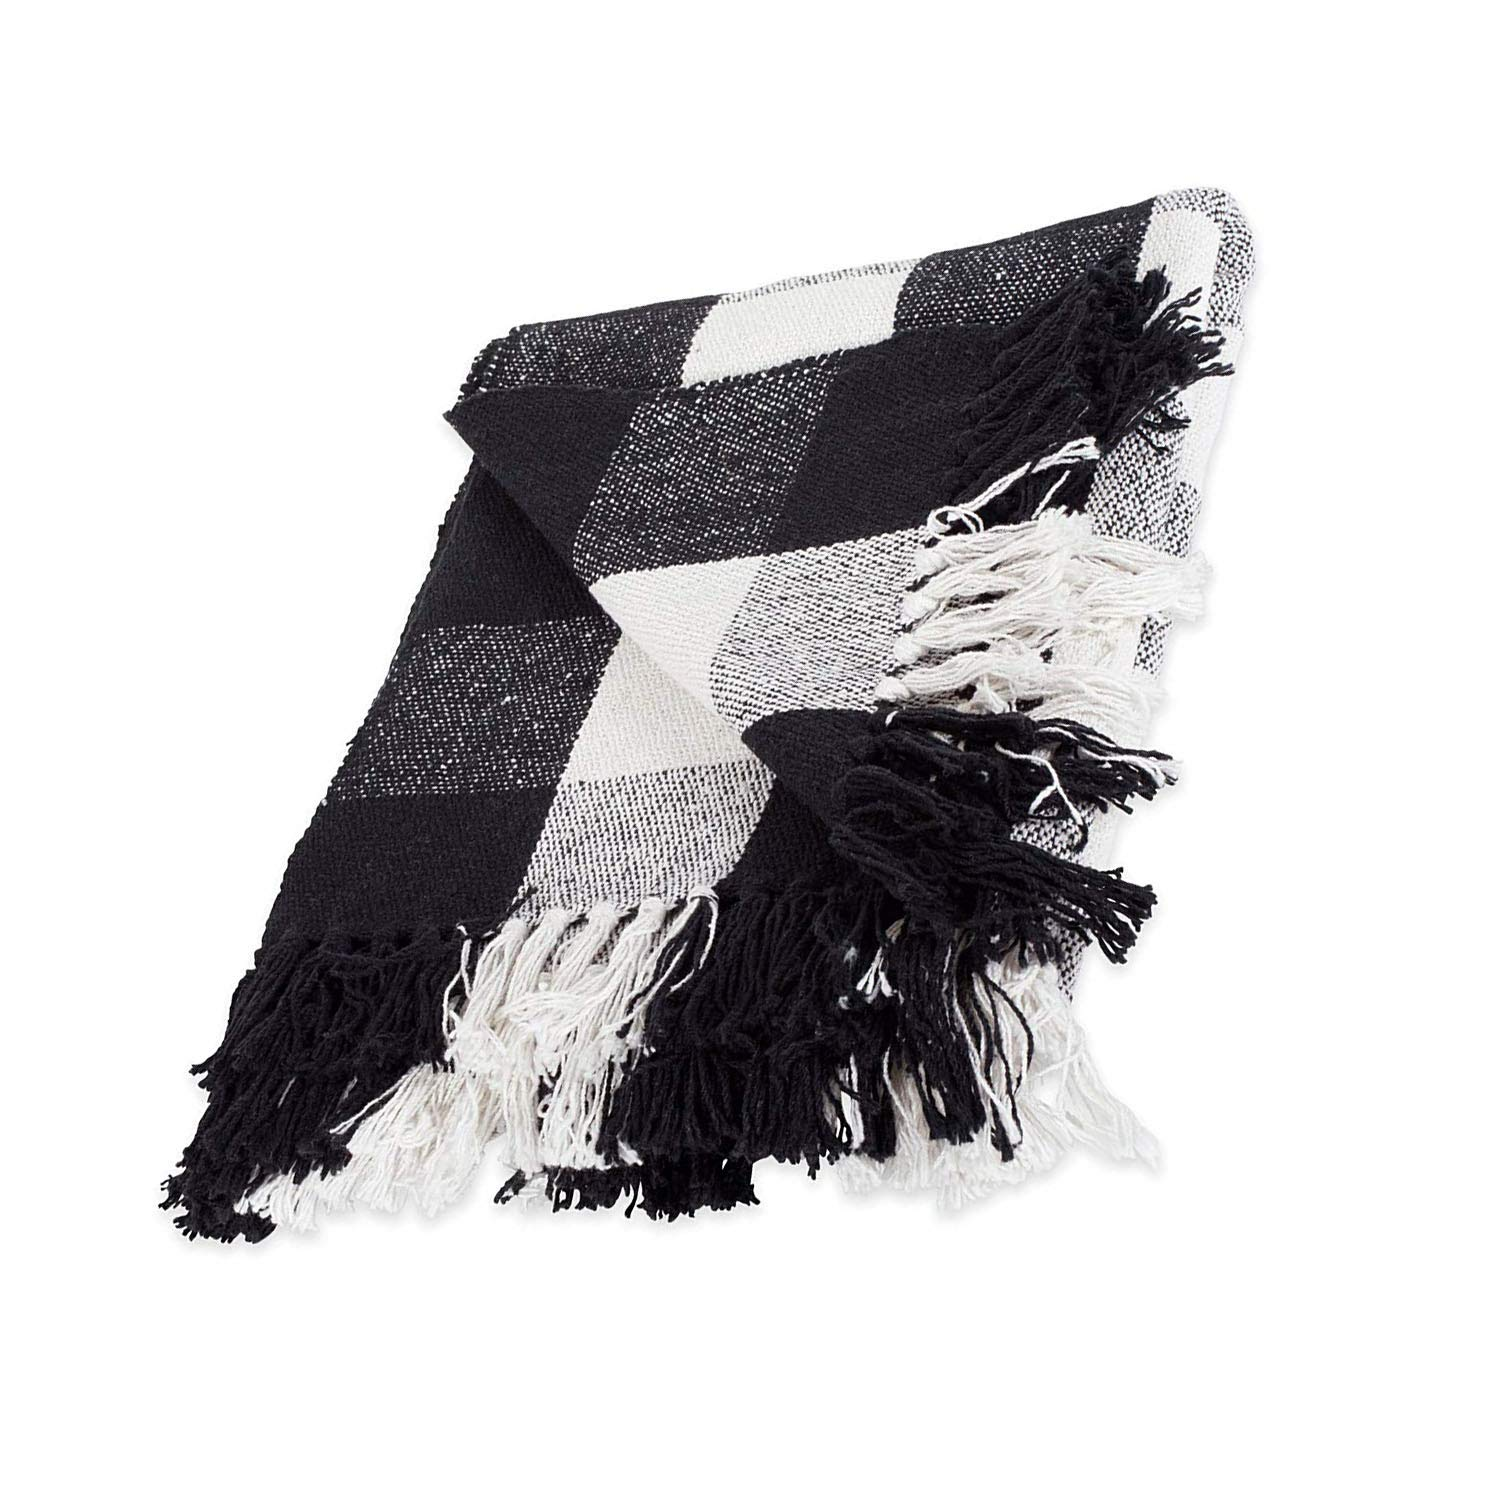 Xelparuc 100% Cotton Buffalo Check Throw for Indoor/Outdoor Use Camping BBQ Beaches Everyday Blanket (50 x 60, Black and White)